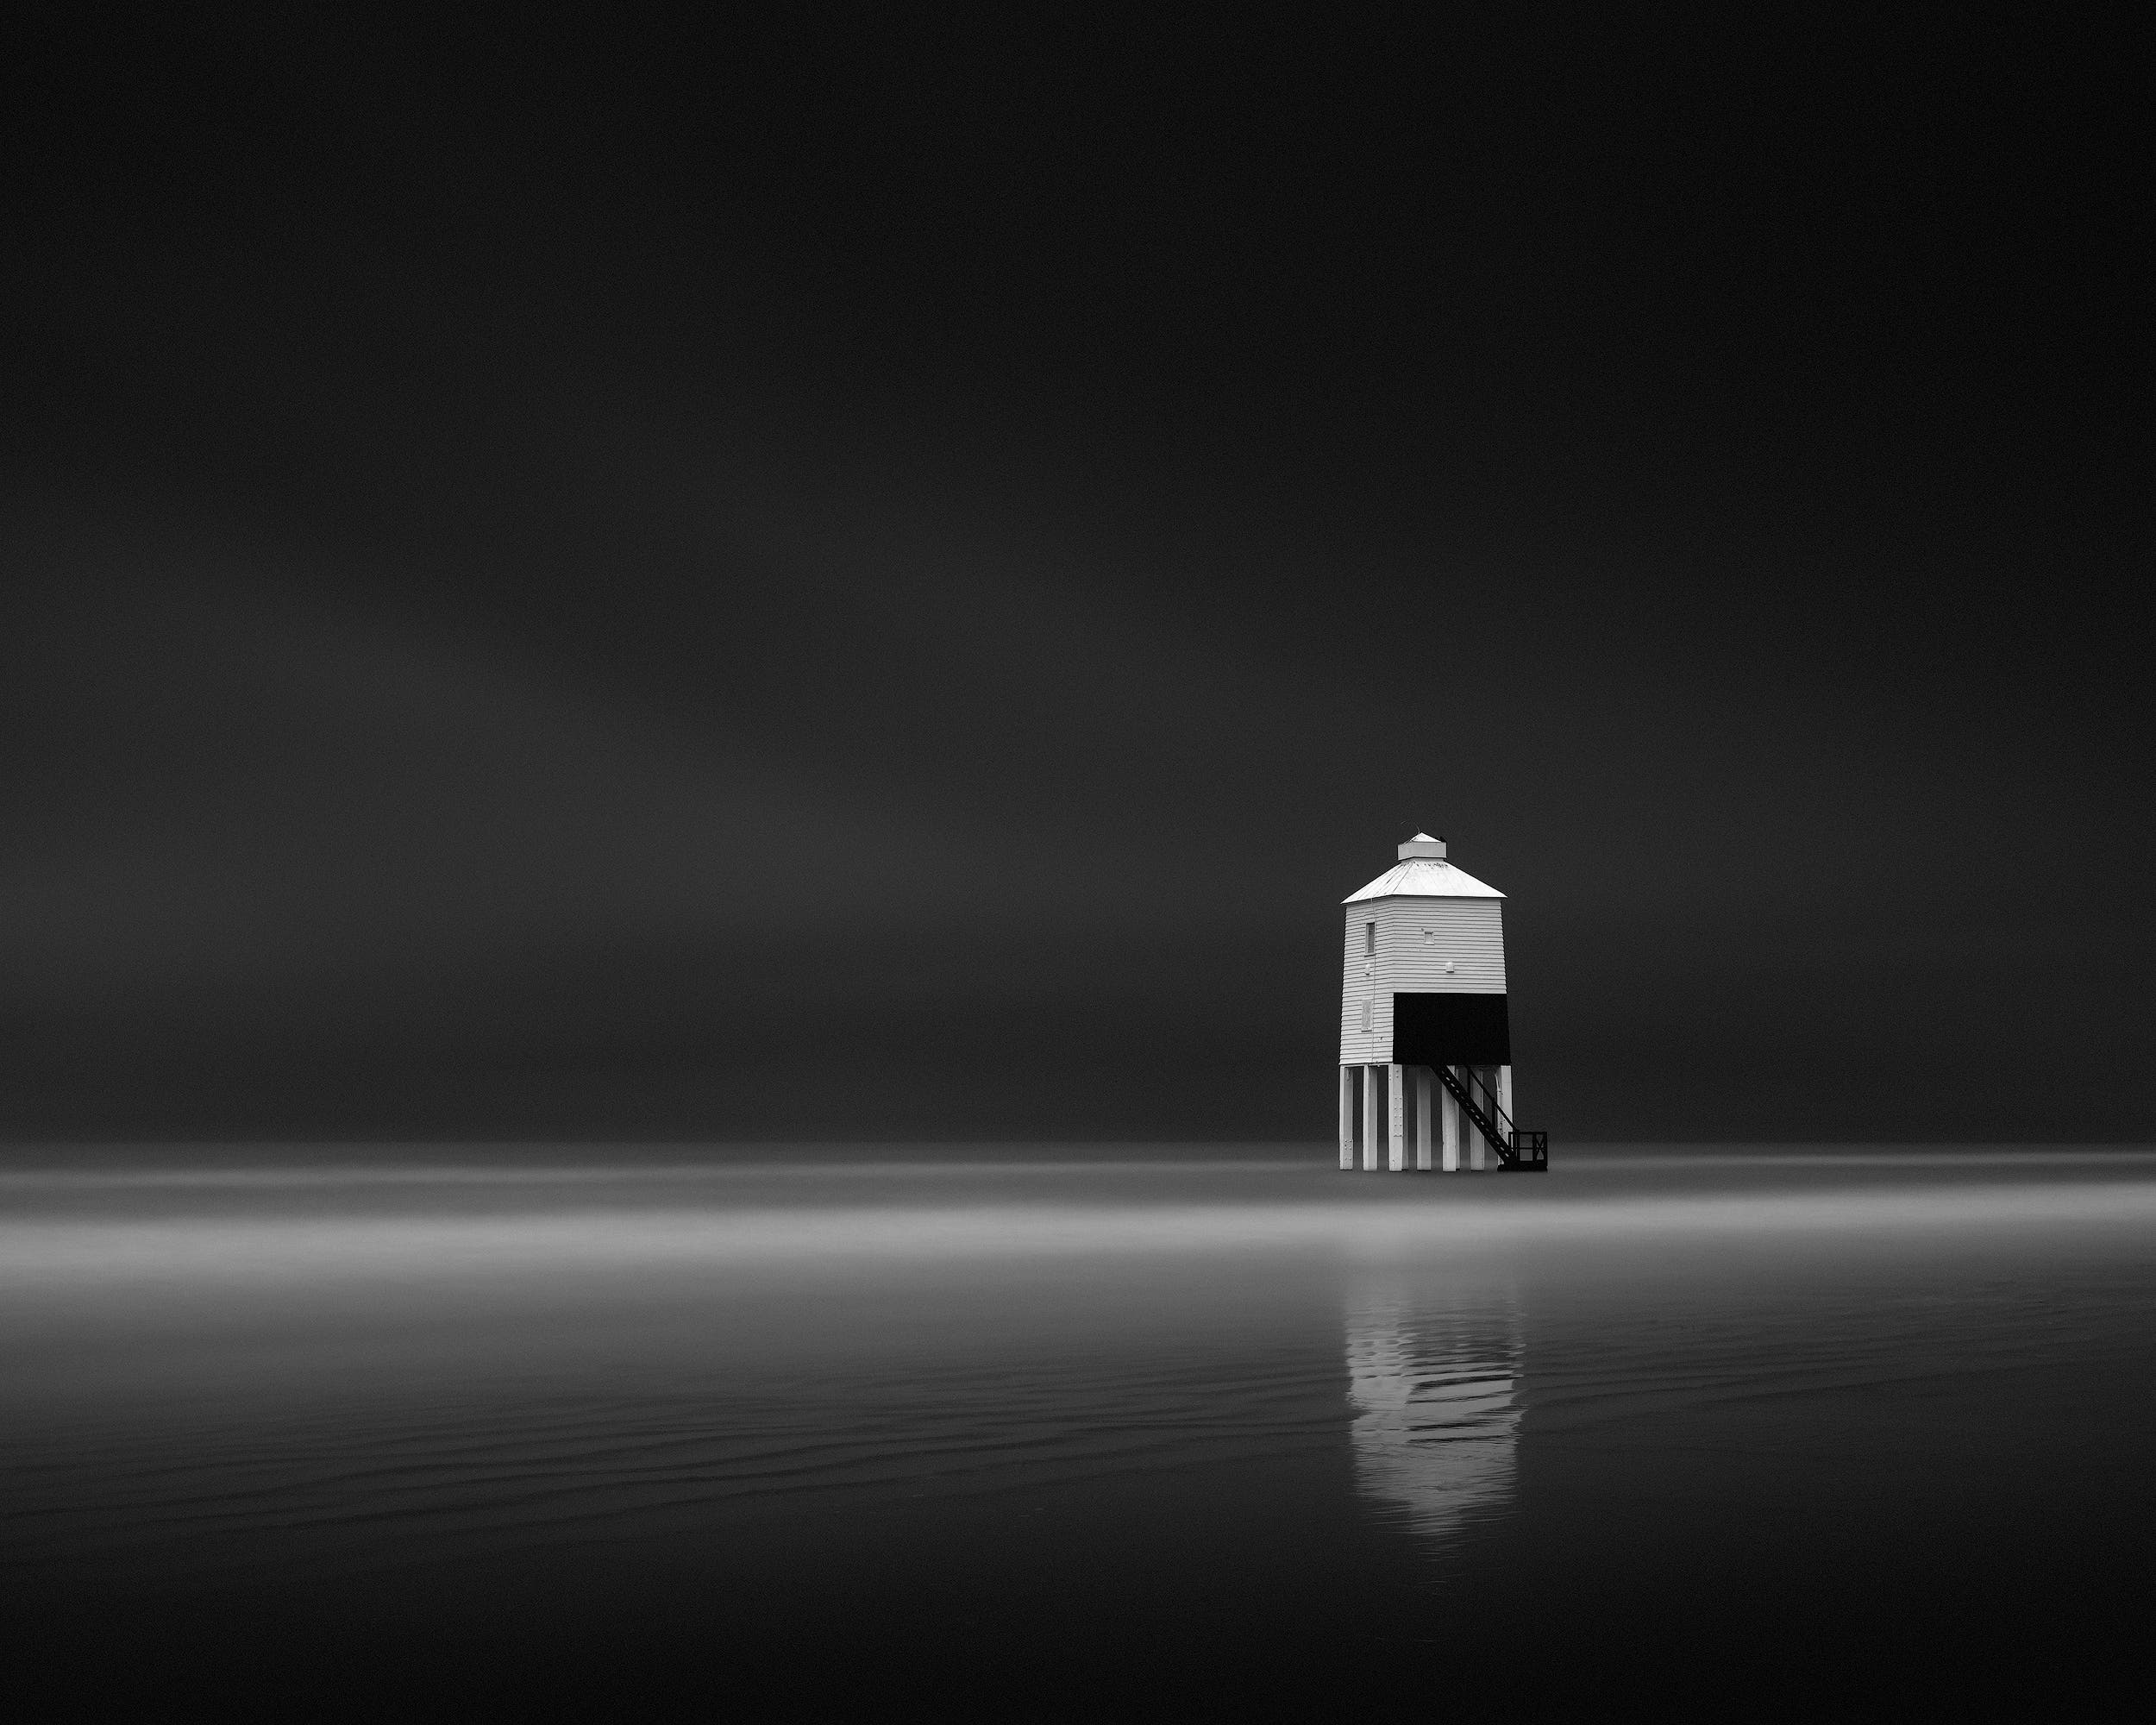 Antonio Gouveia on Creating an Atmosphere for Minimalist Photography